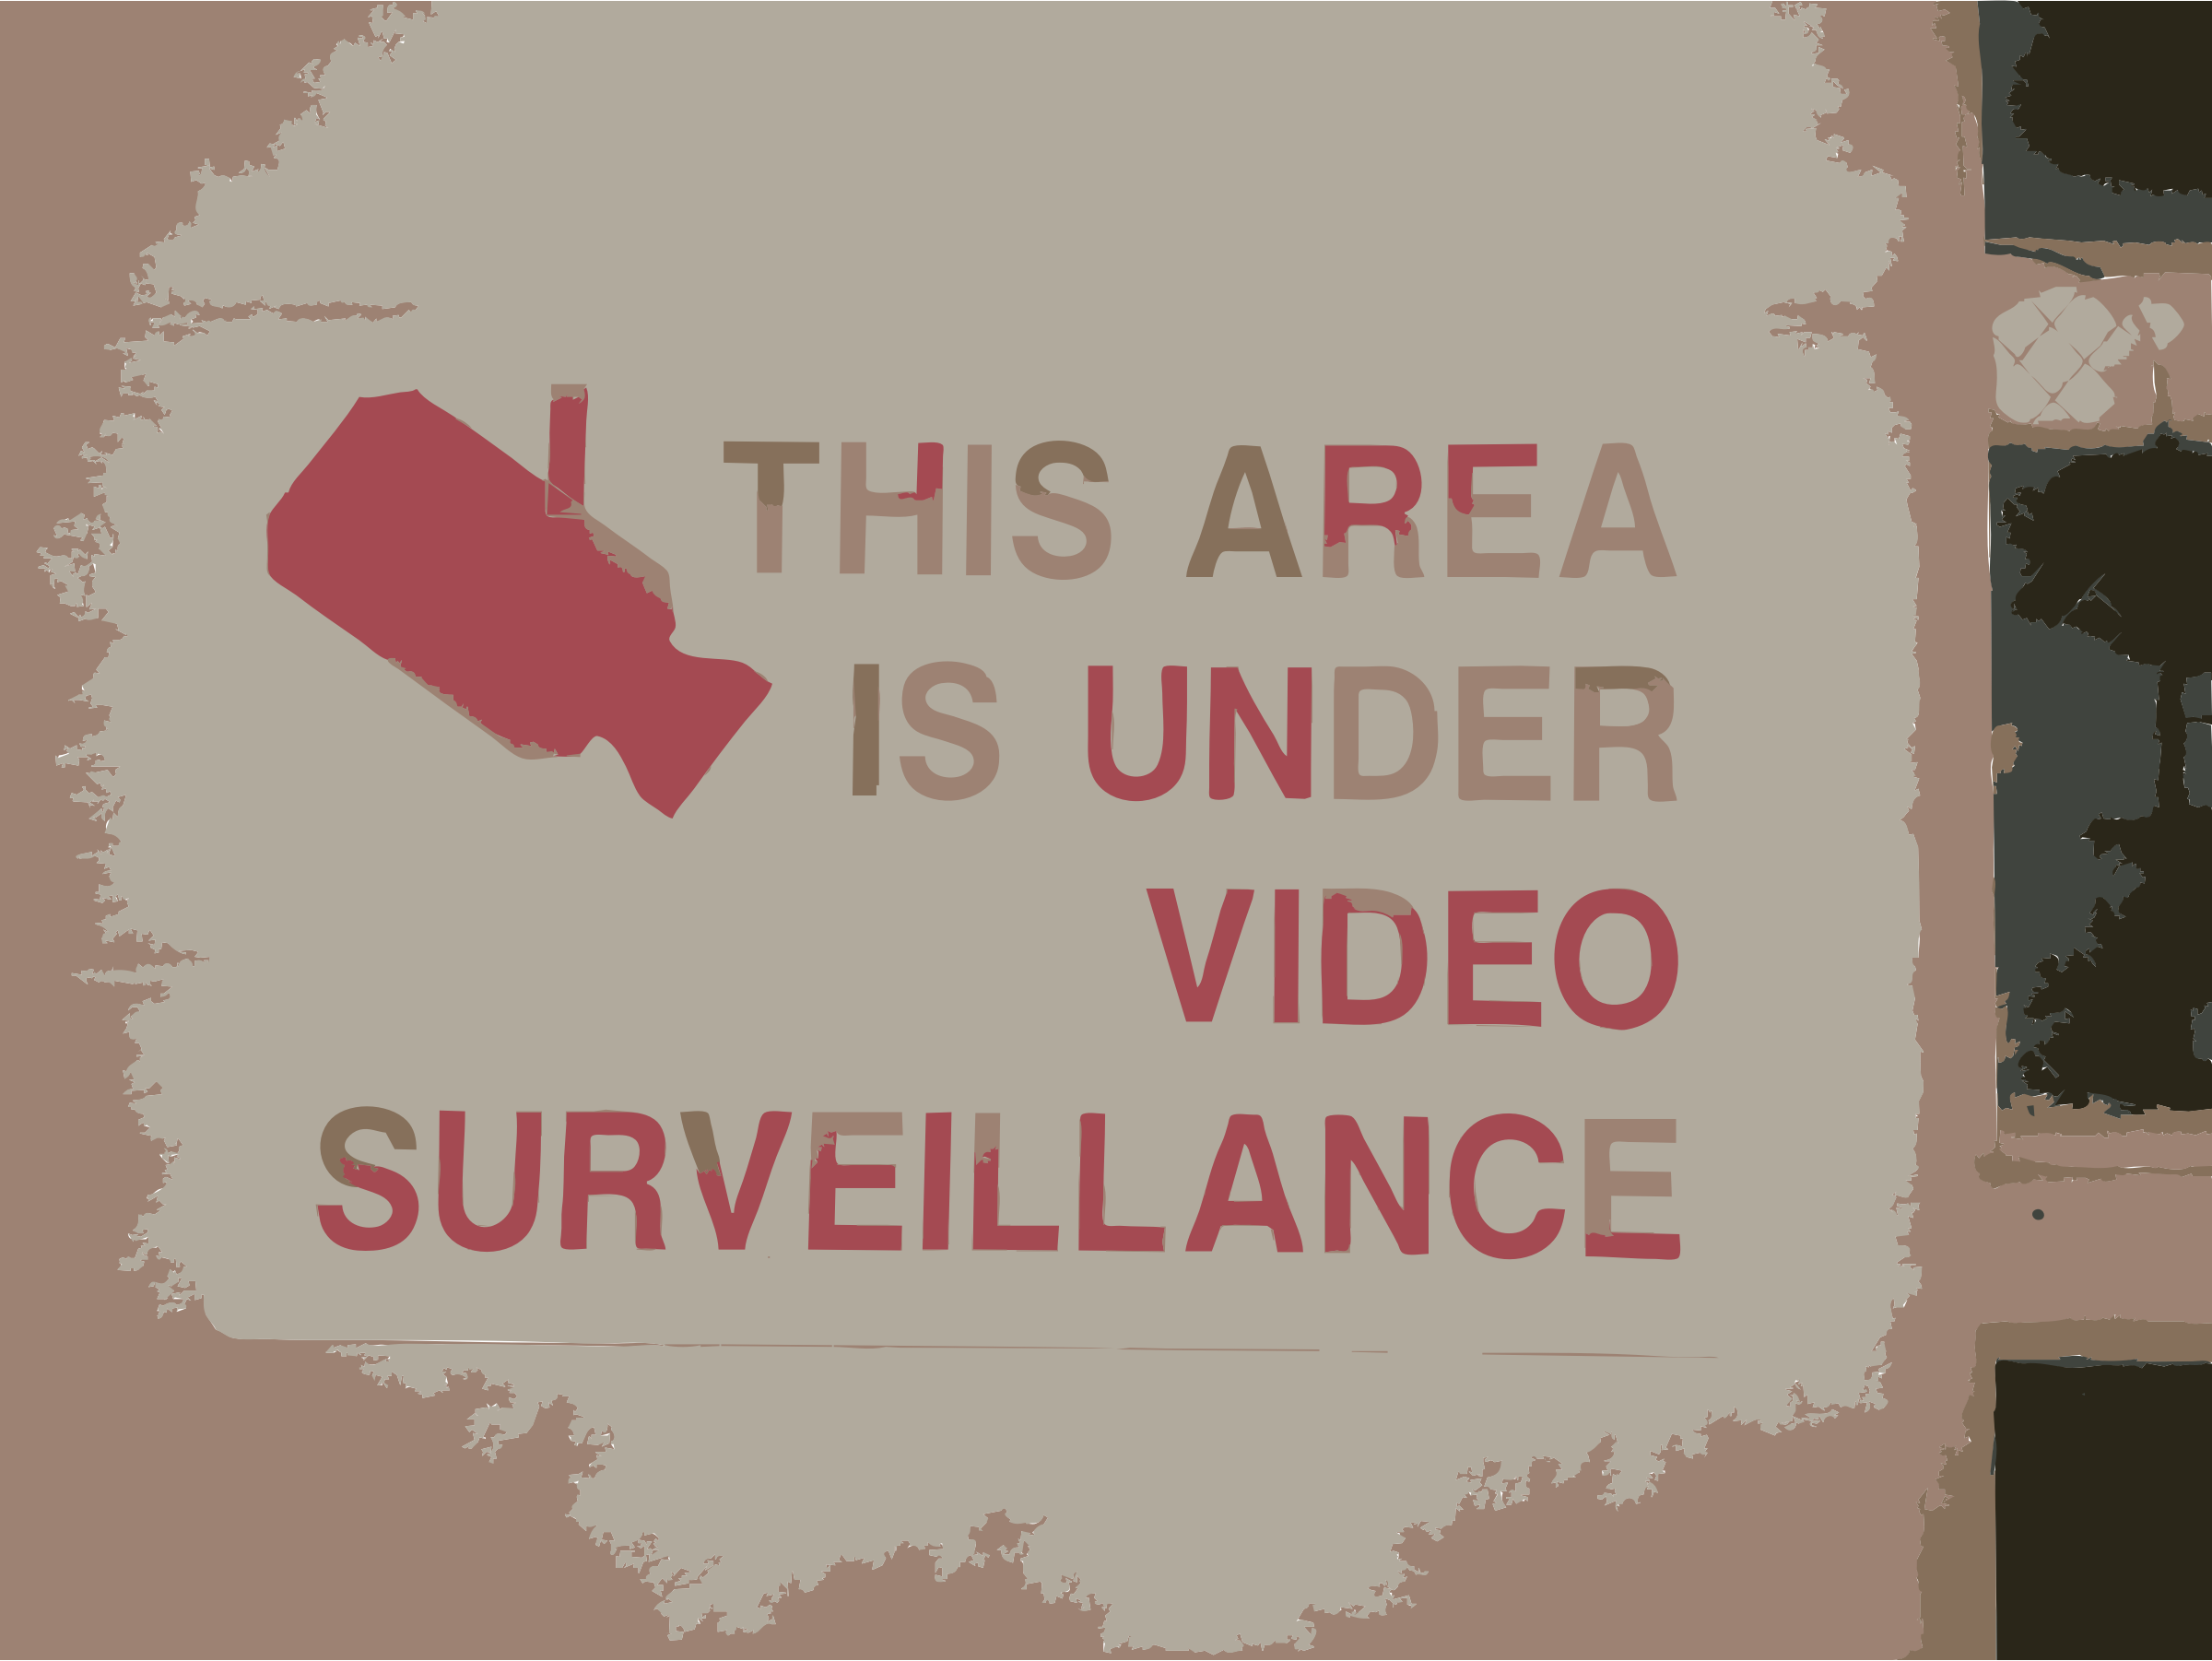 Video surveillance by rejon